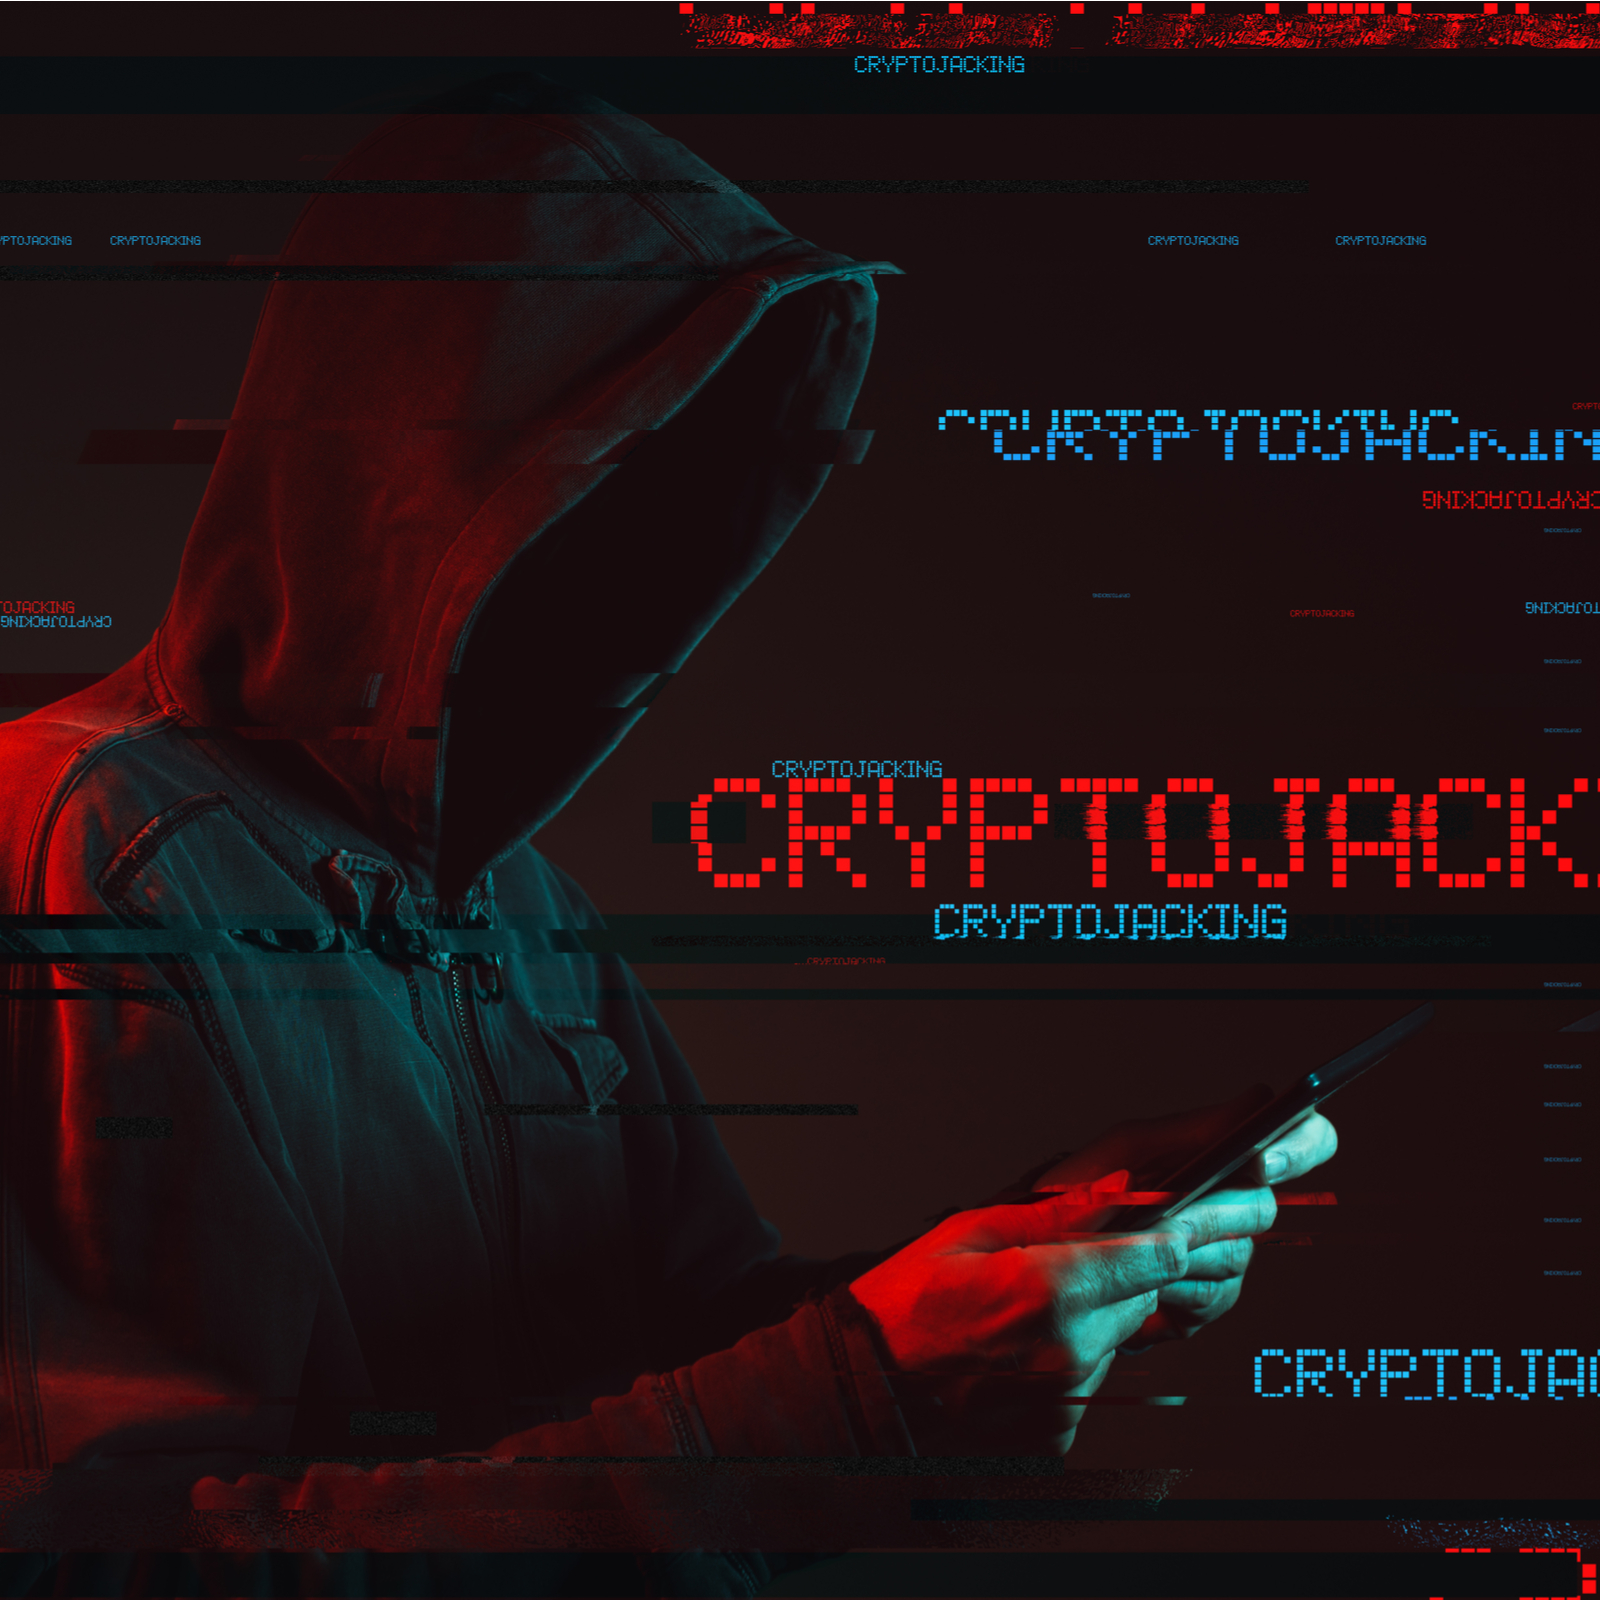 Cryptojacking Rises as Ransomware Declines, Cyber Security Researchers Find